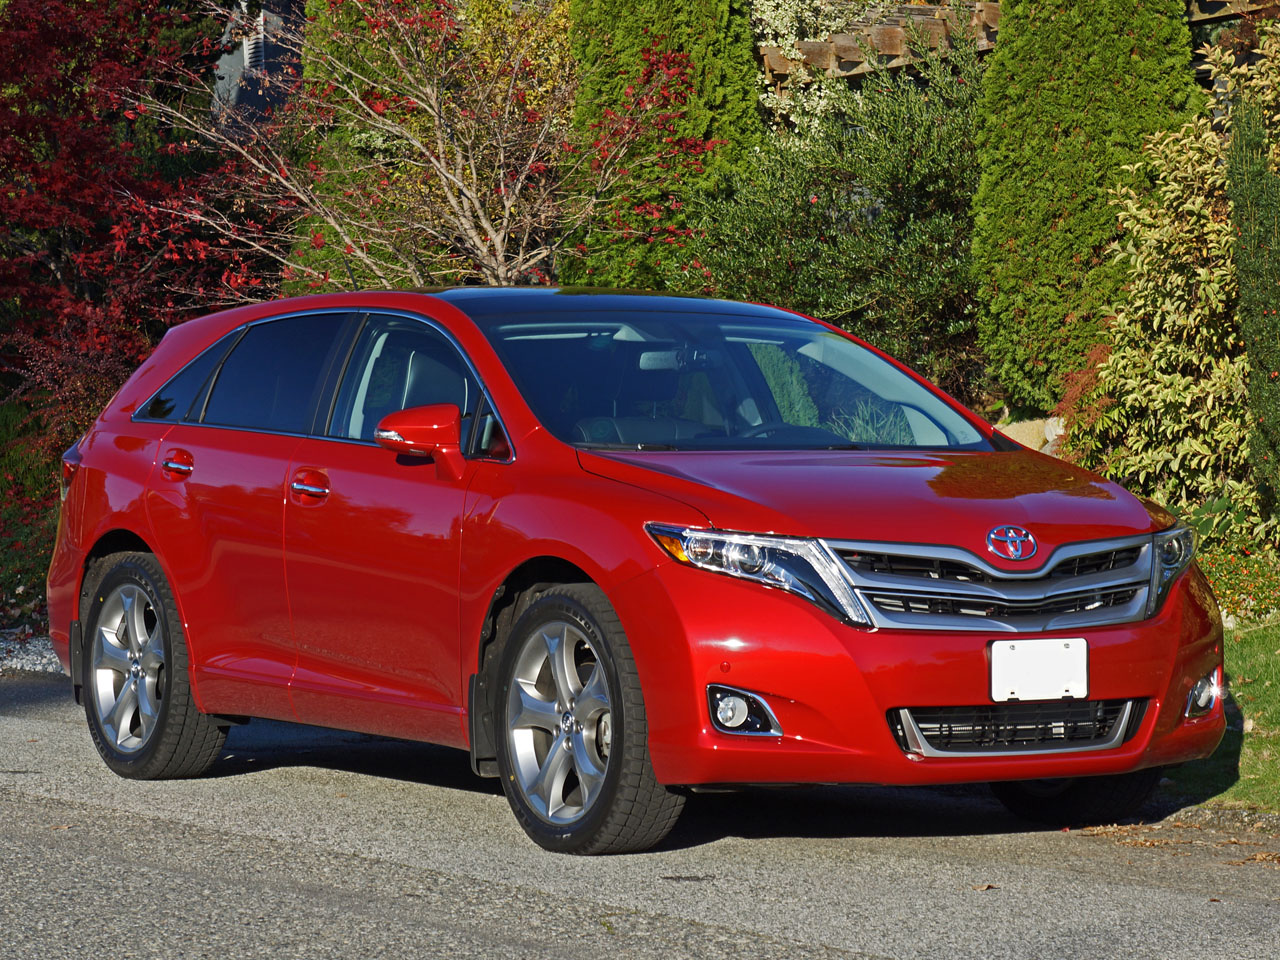 review teaser venza carcostcanada road news awd limited alt test toyota